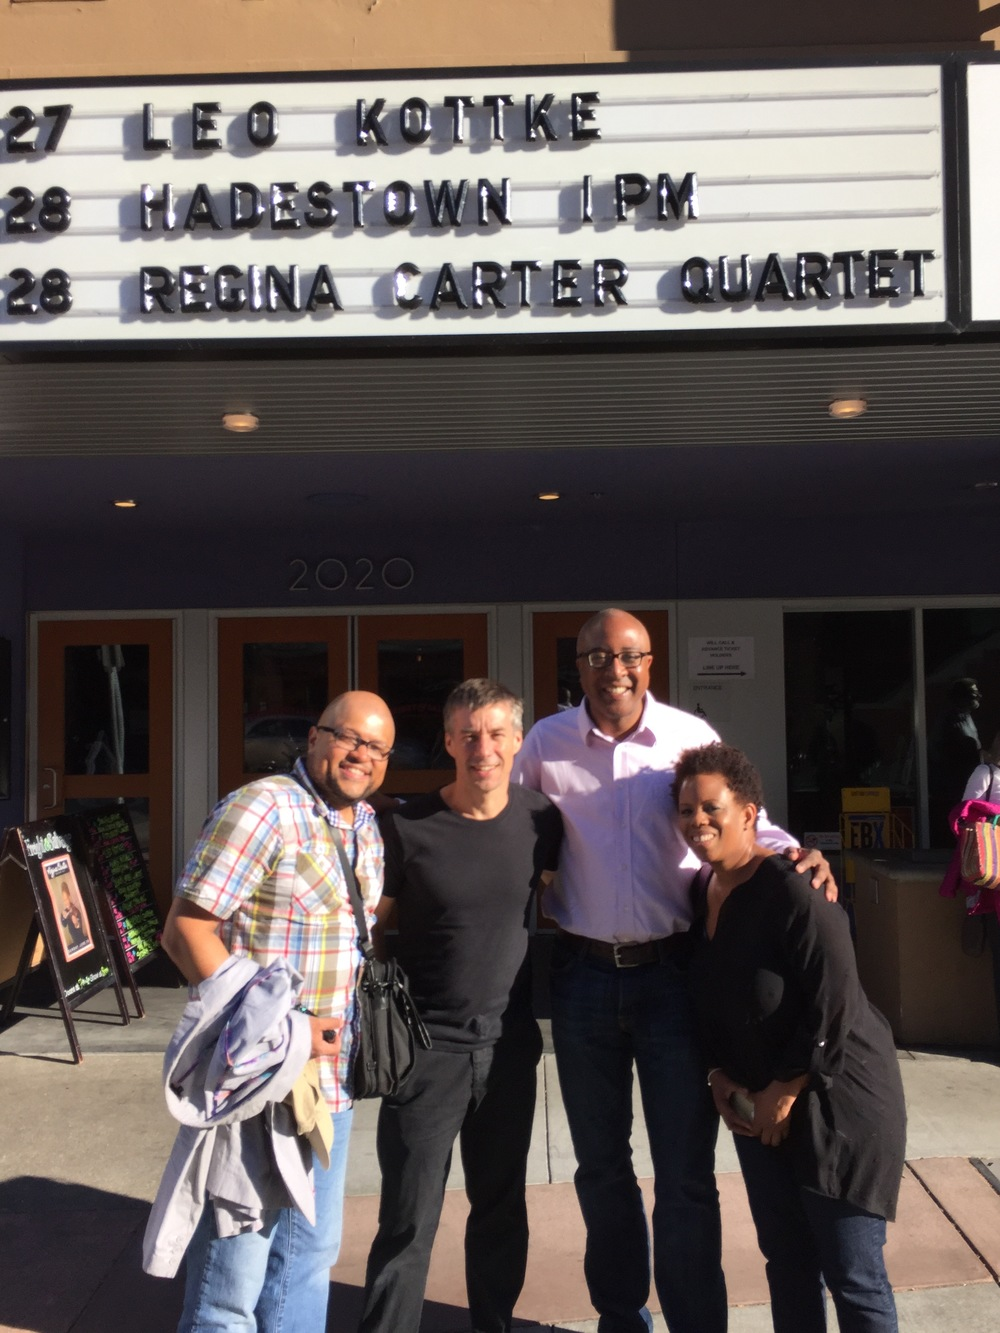 With Regina Carter's Band in Berkeley, CA